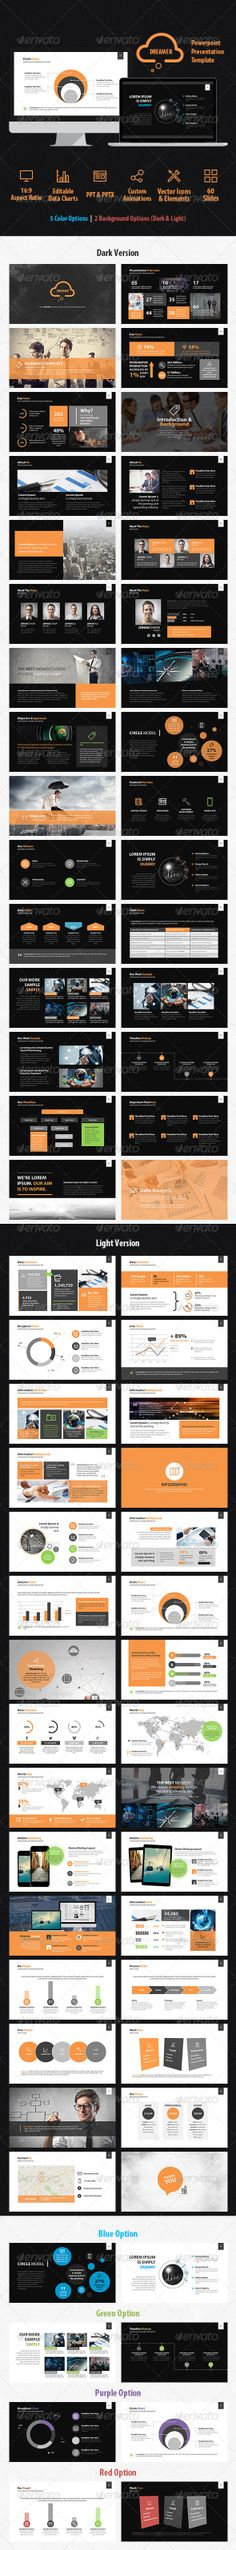 Dreamer Powerpoint Presentation Template - Business Powerpoint Templates